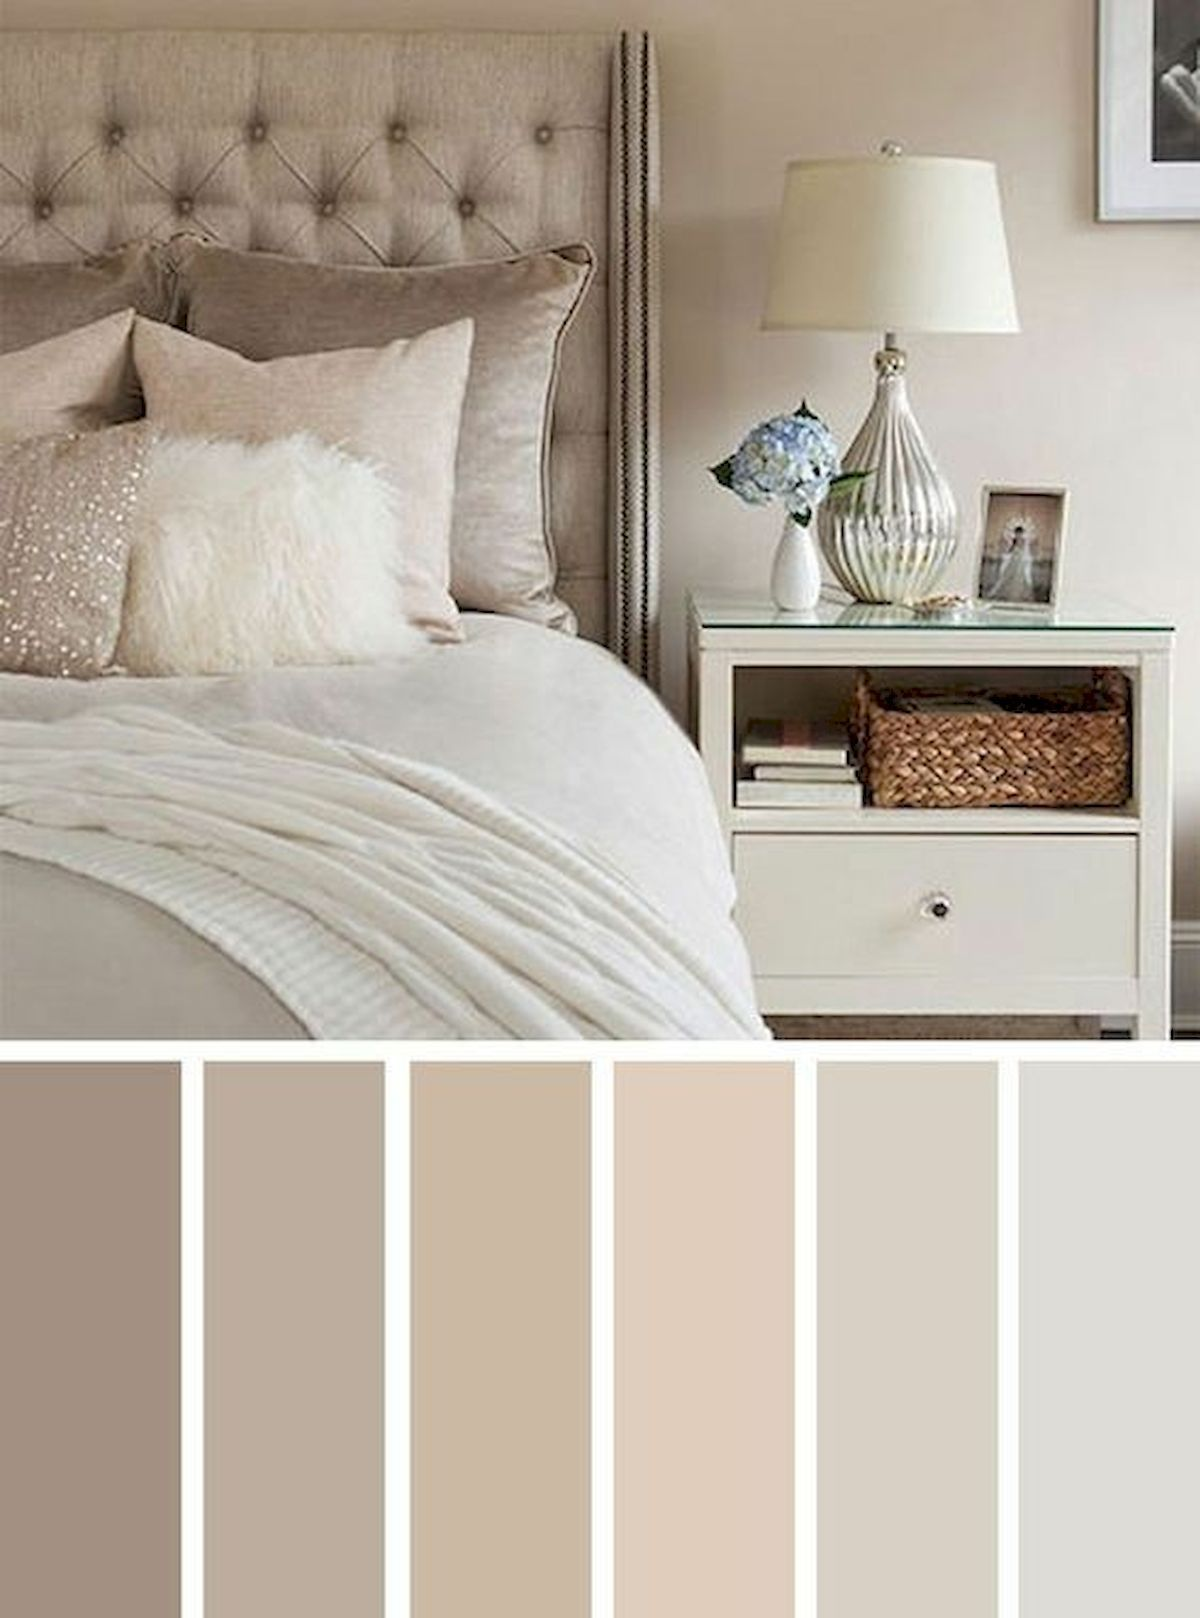 40 Beautiful Bedroom Color Schemes Ideas #livingroomcolorschemeideas